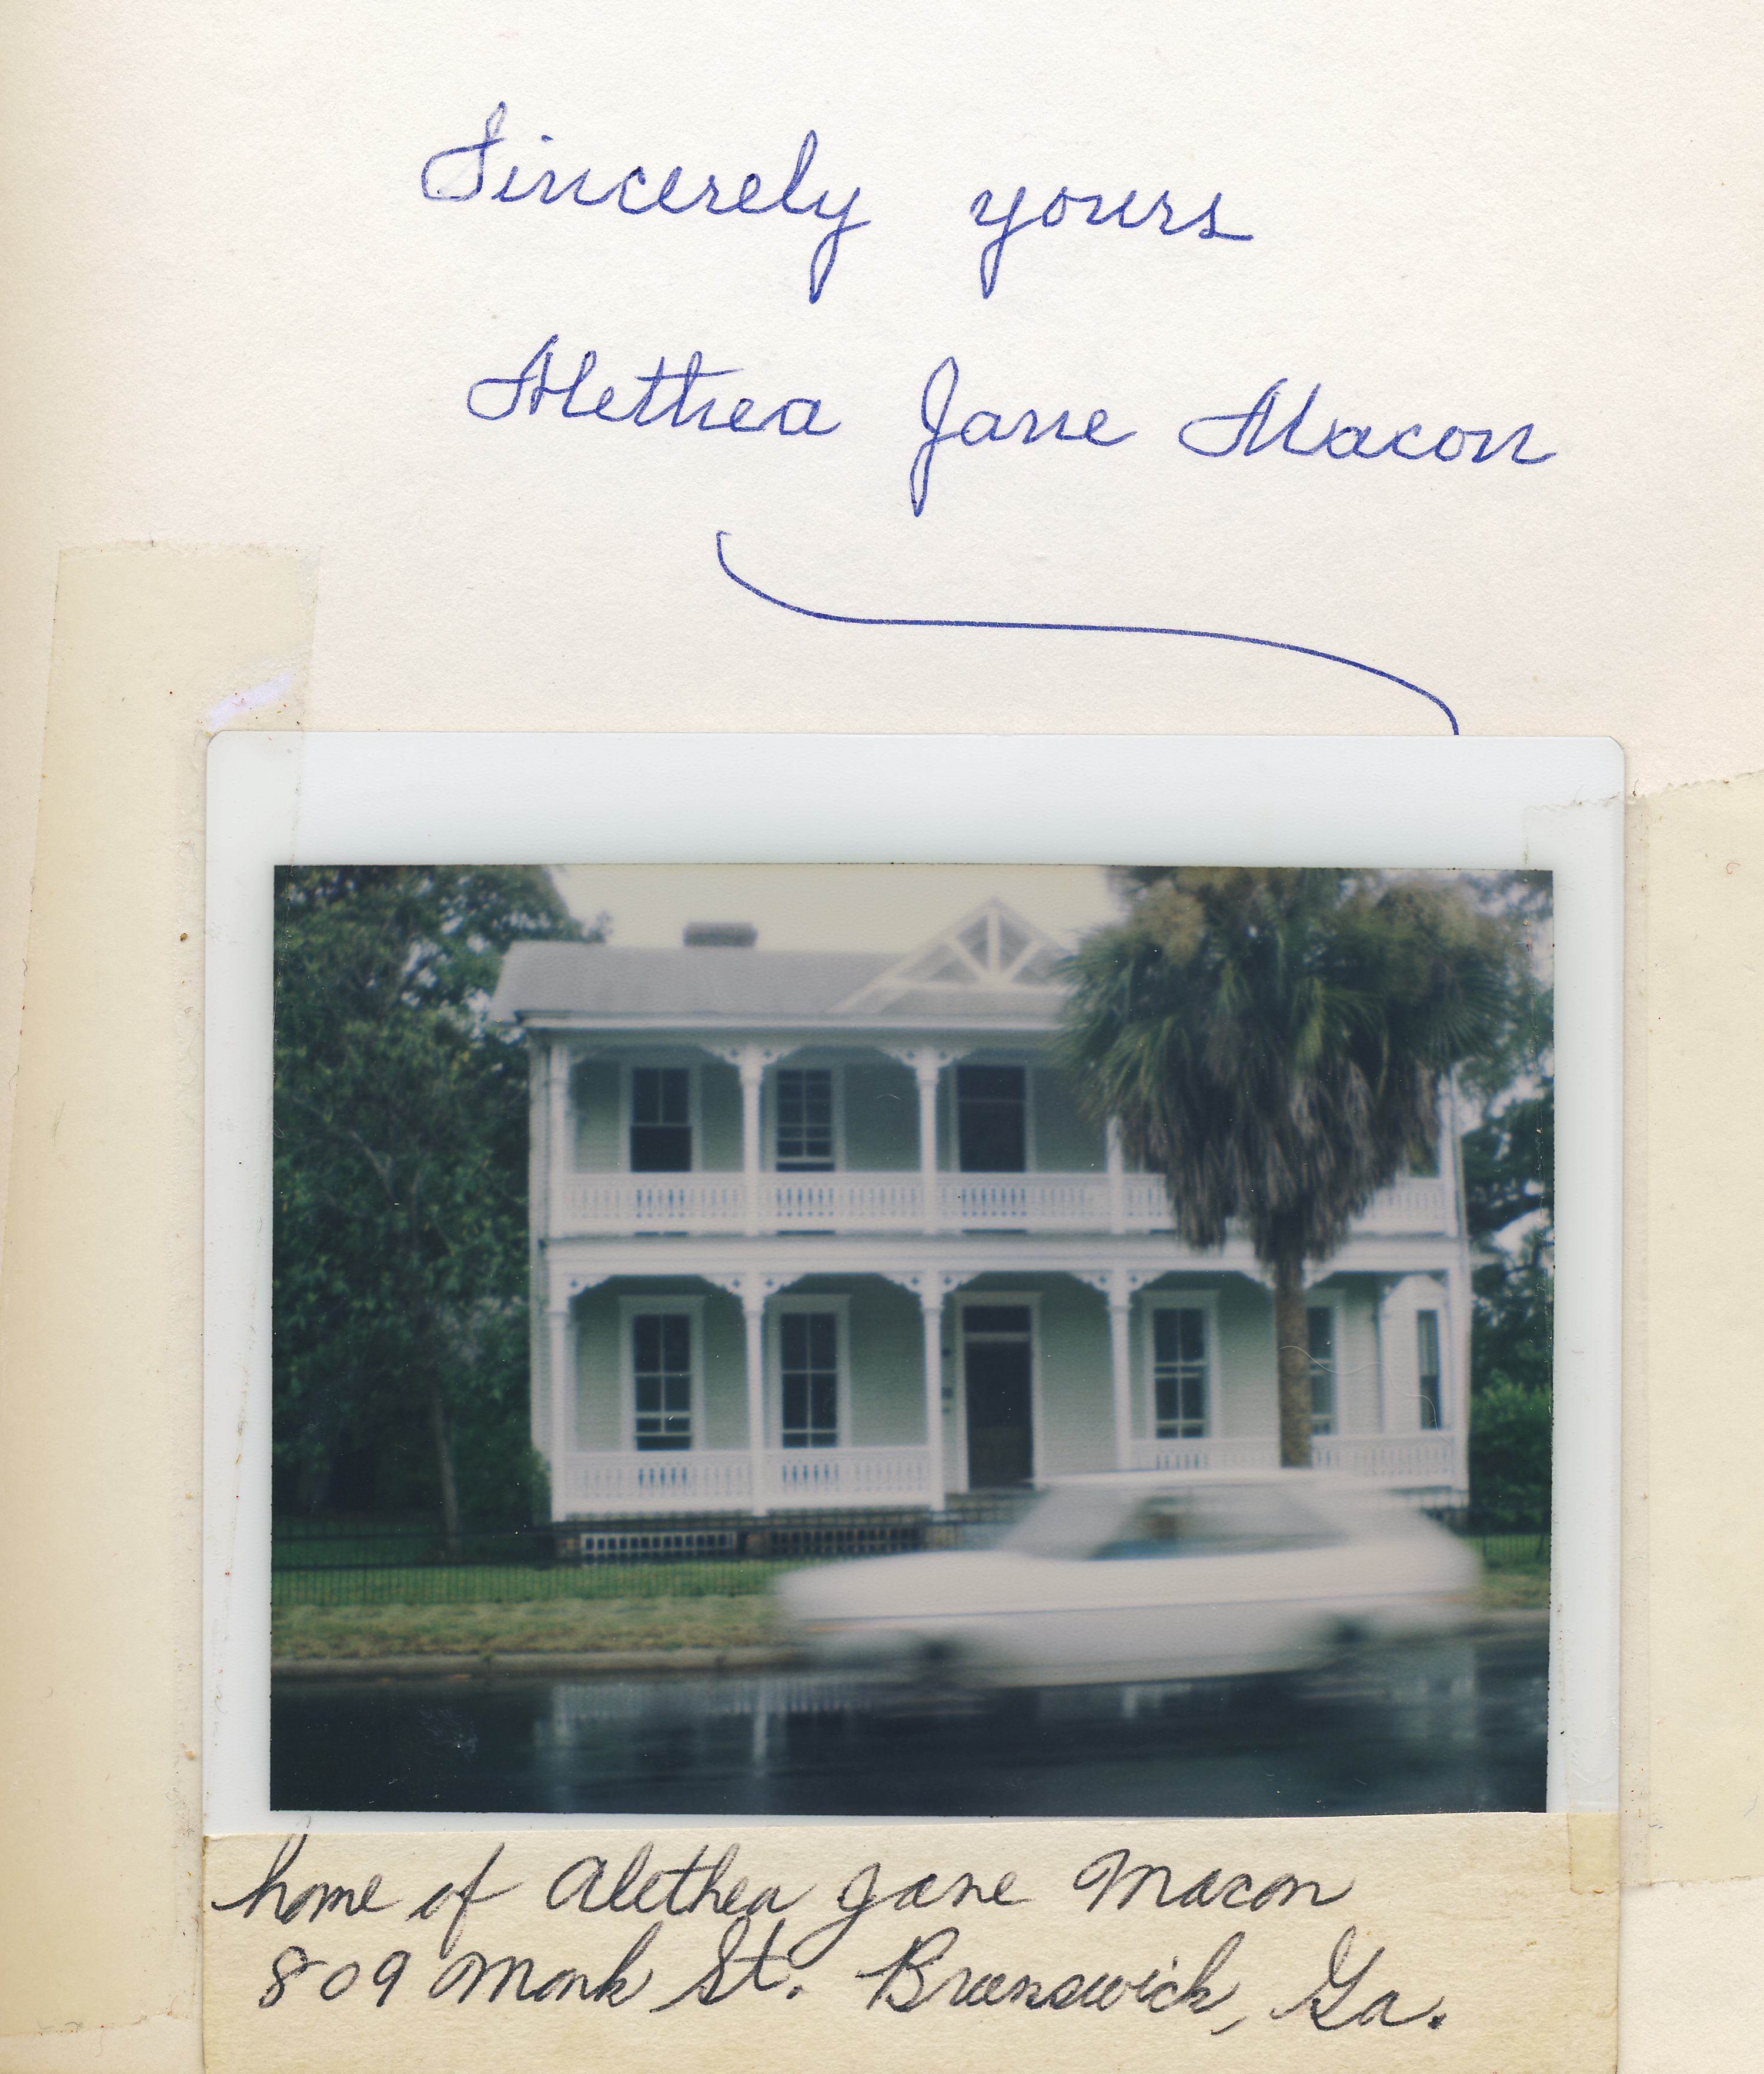 Signature and home of Alethea Jane Macon